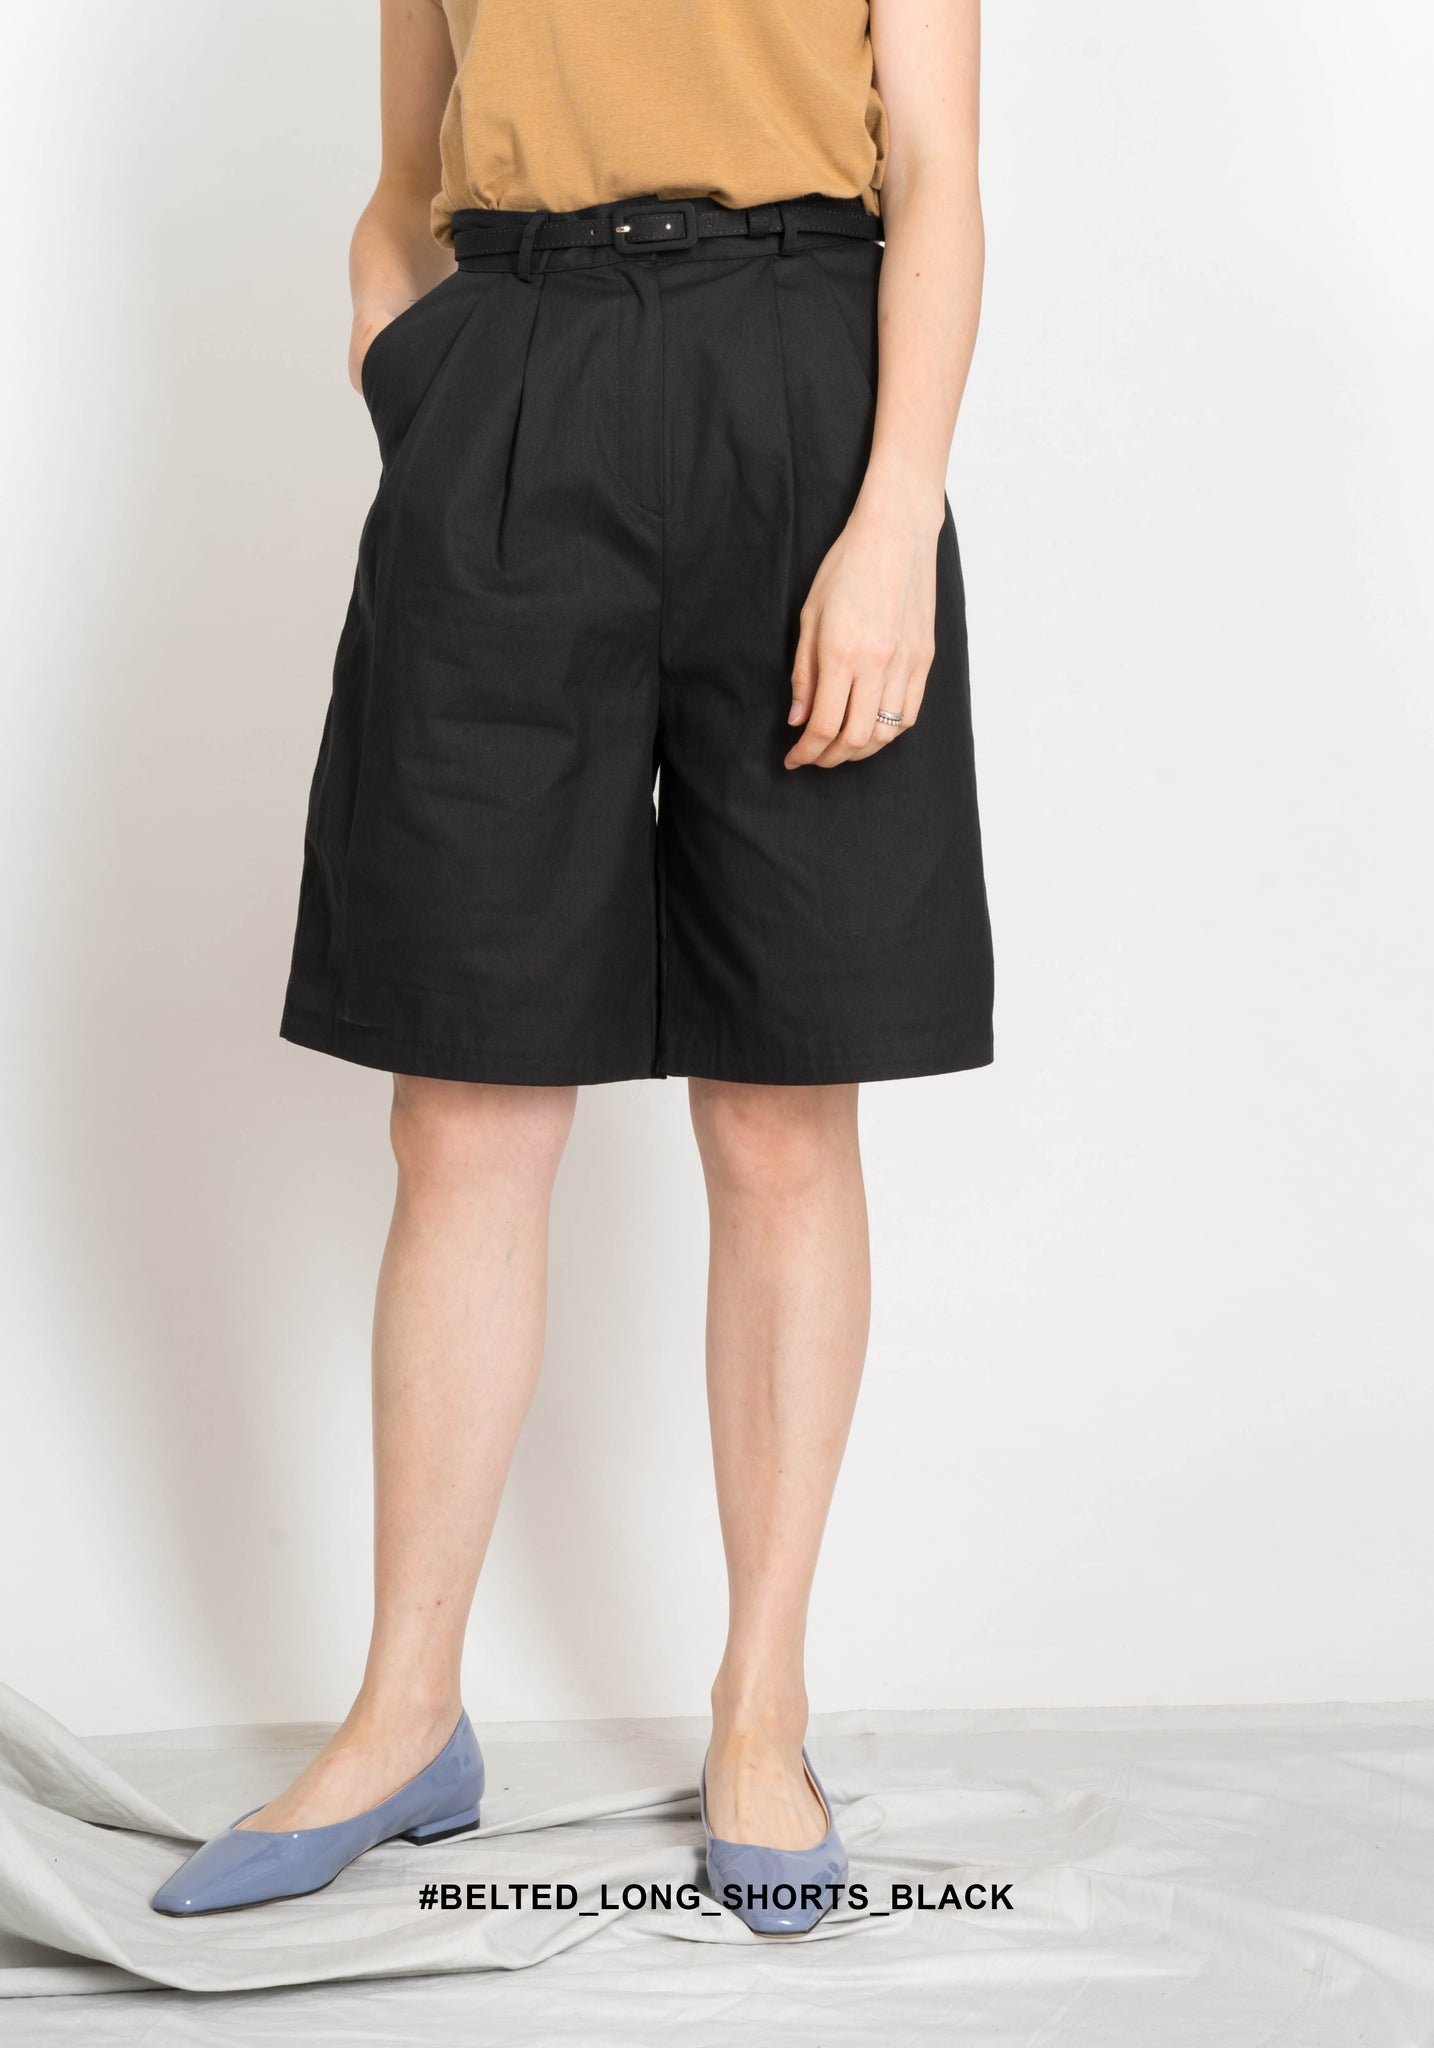 Belted Long Shorts Black - whoami